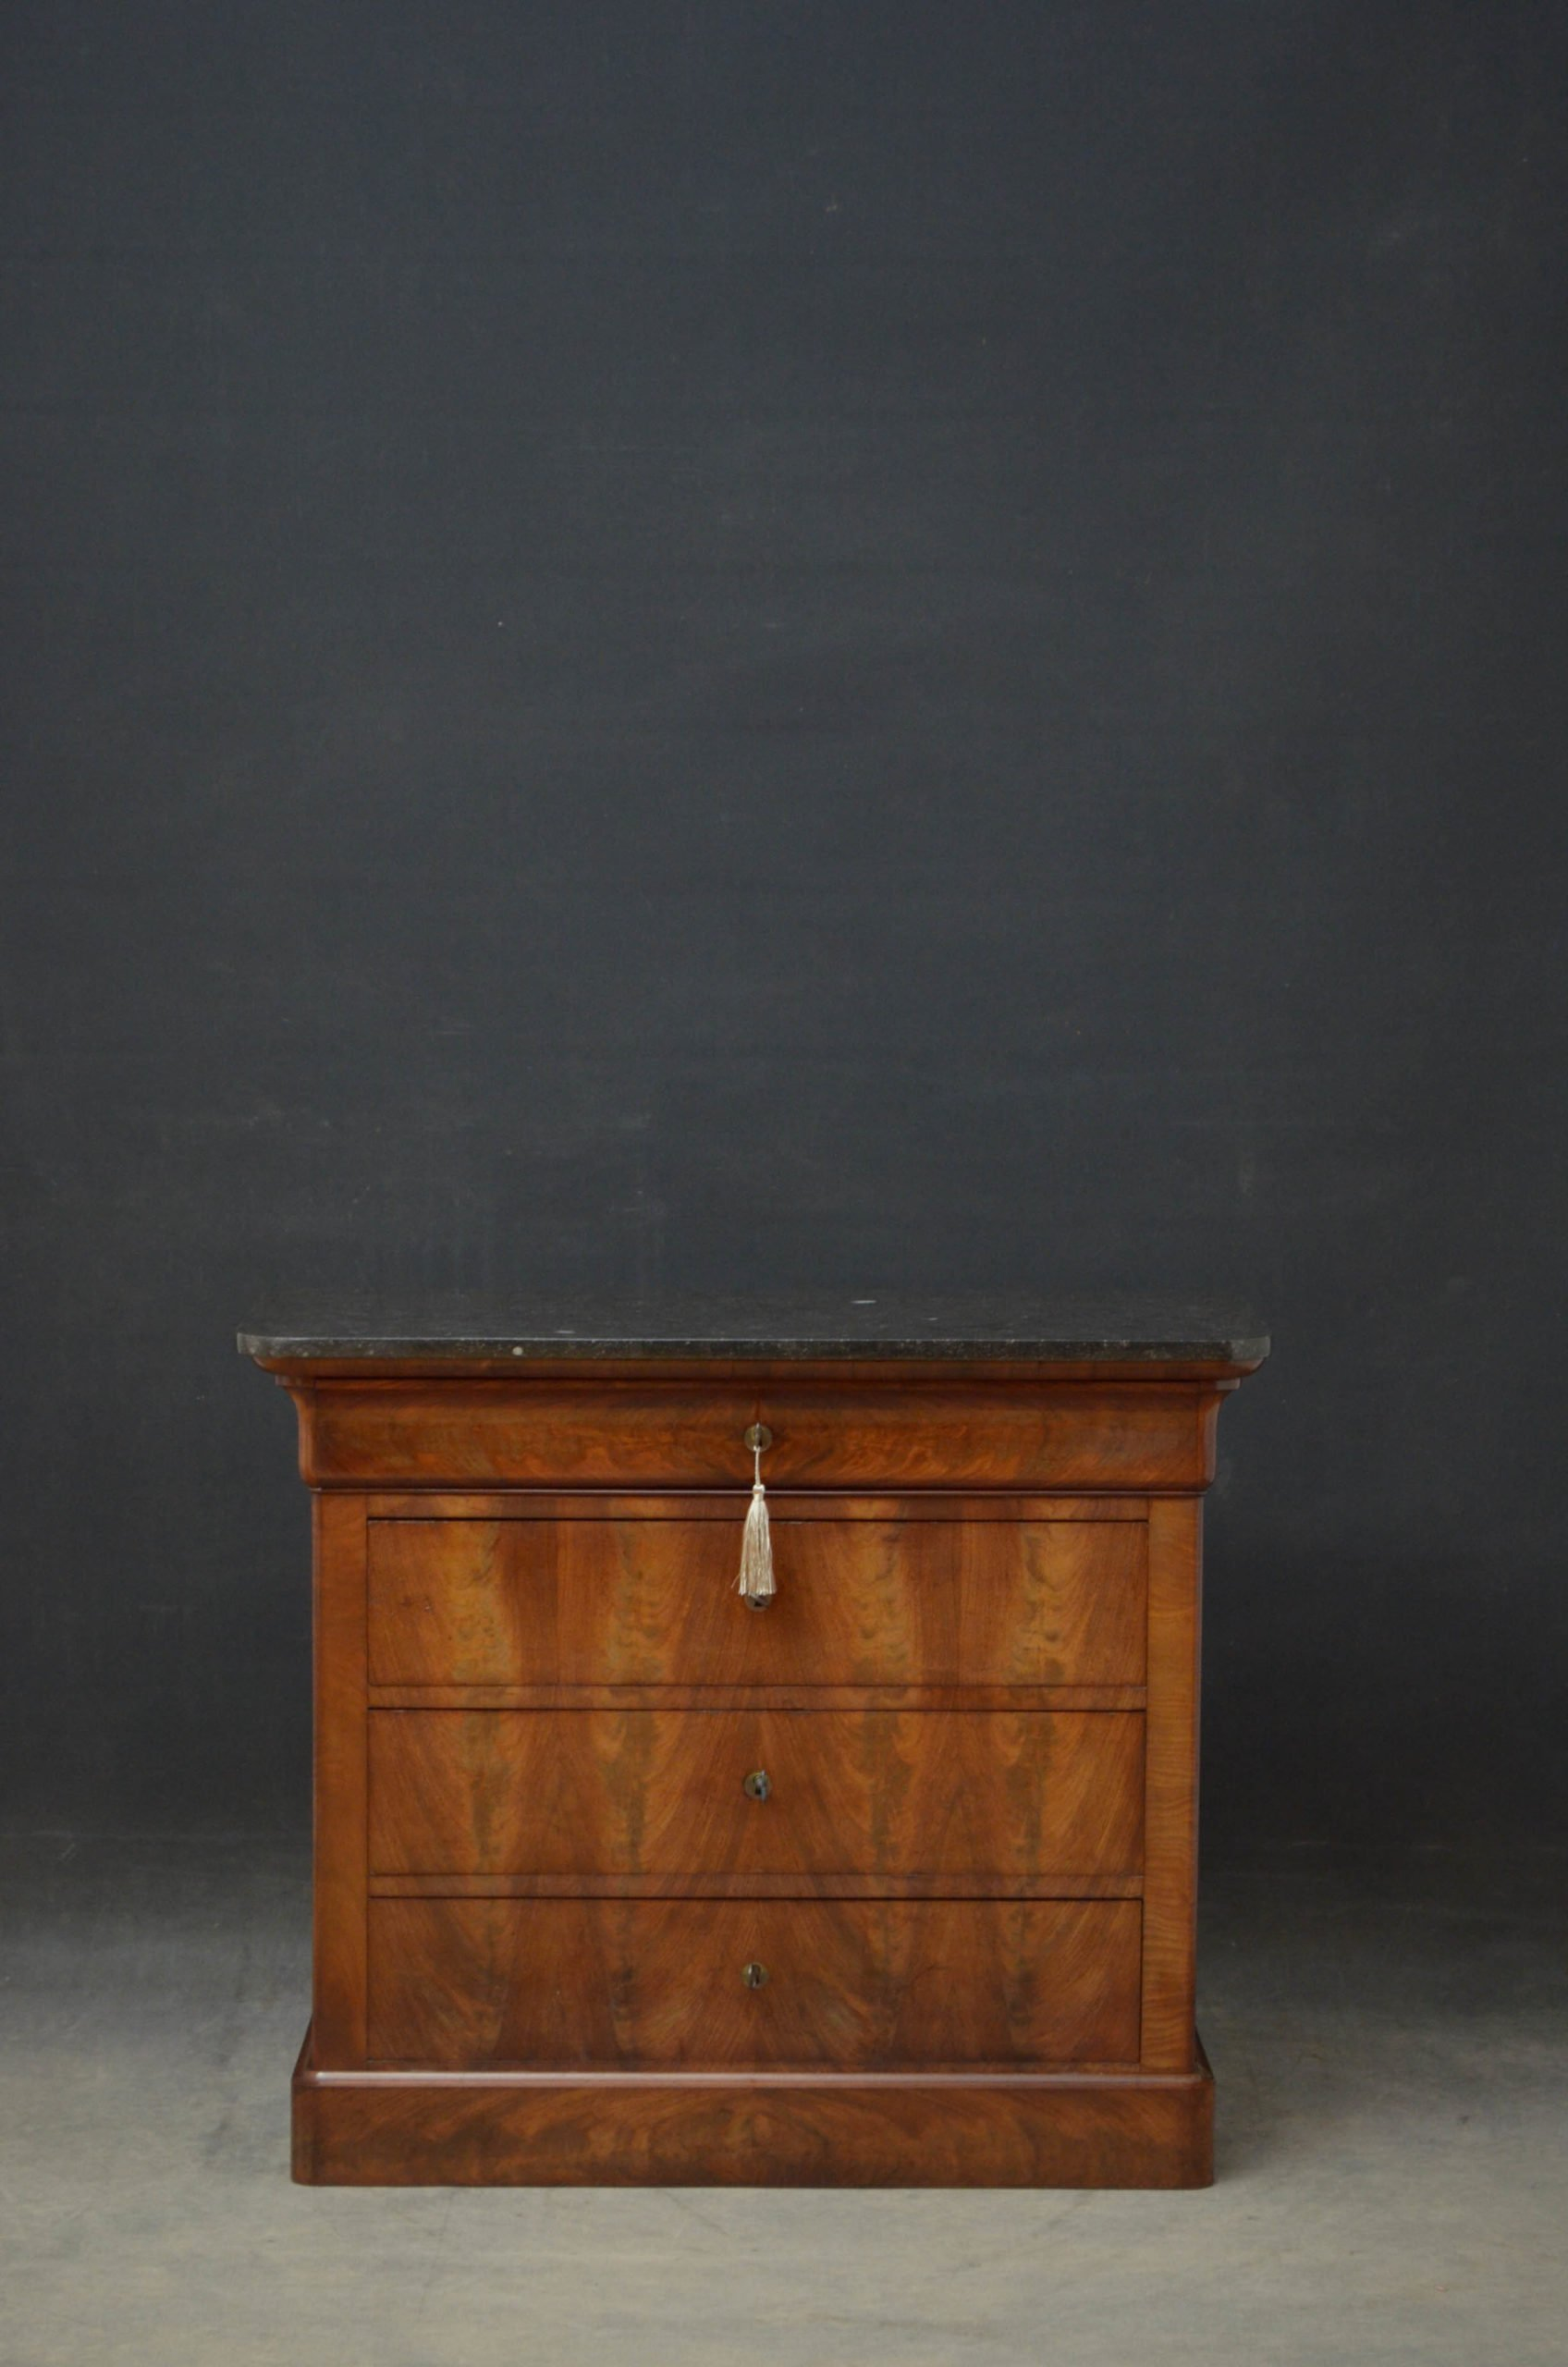 19th Century Continental Chest of Drawers in Flamed Mahogany